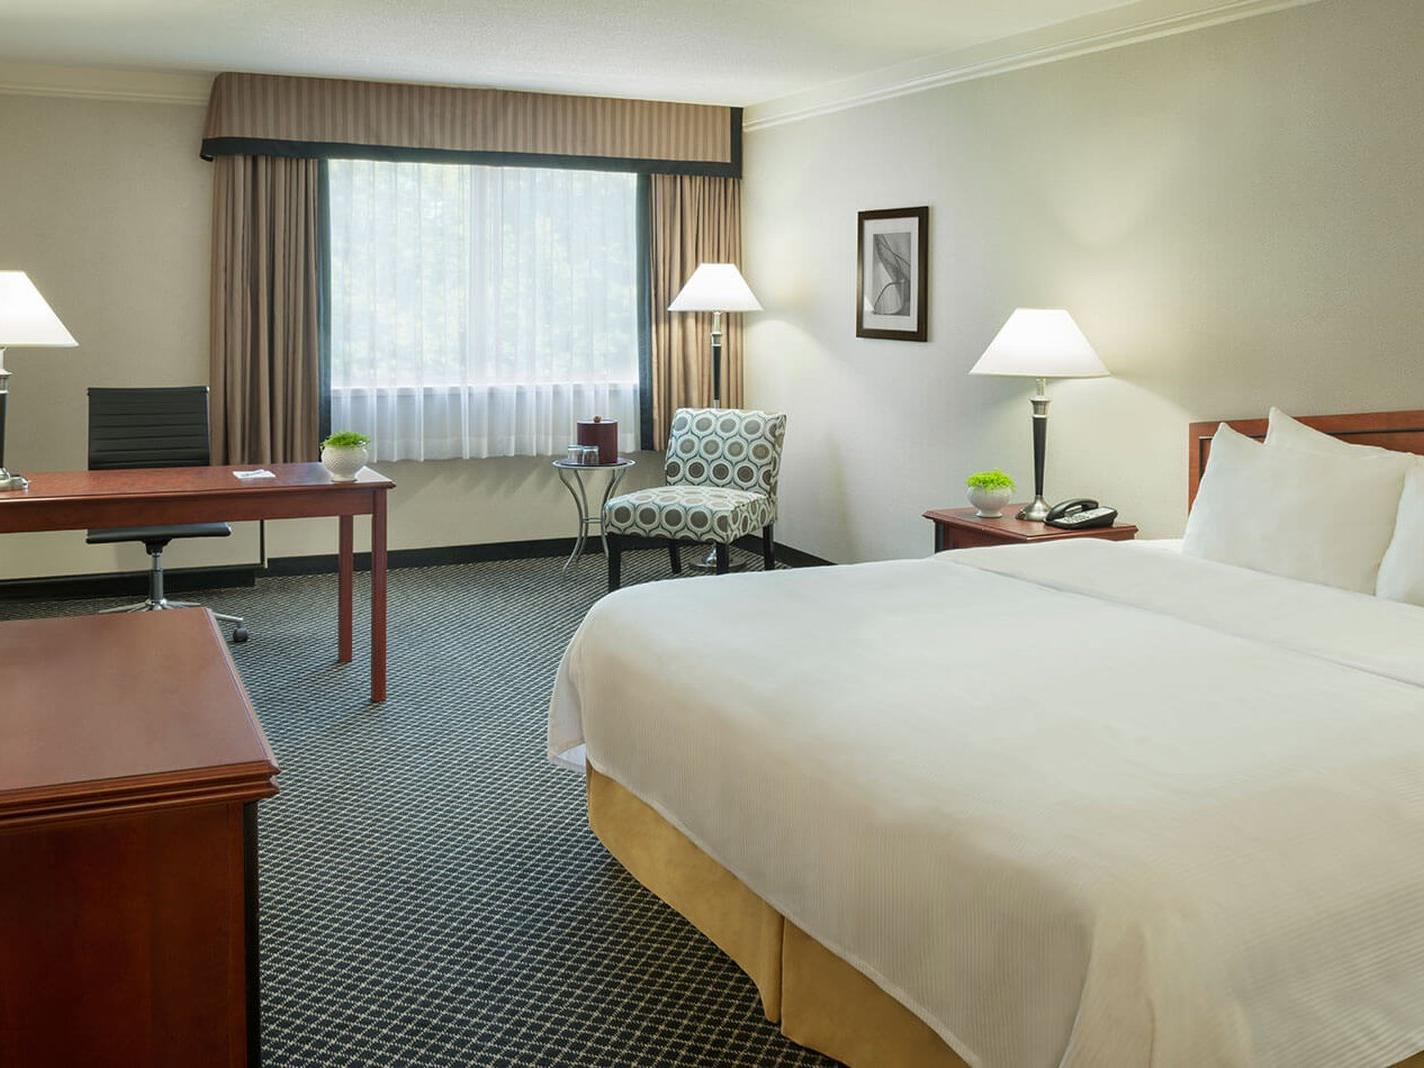 Bed in hotel room with desk and chair